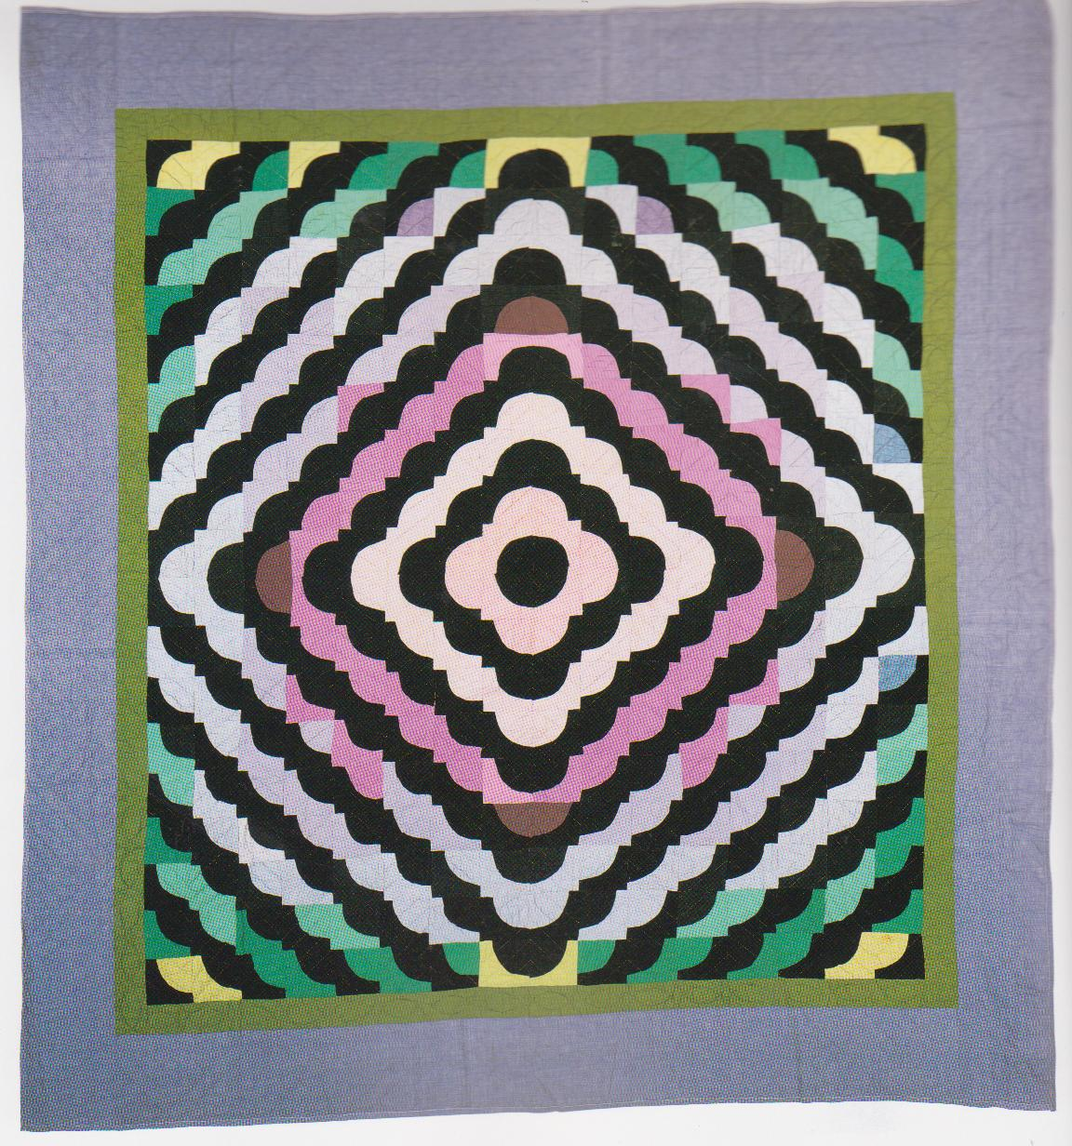 Colorful handmade quilt with a diamond pattern